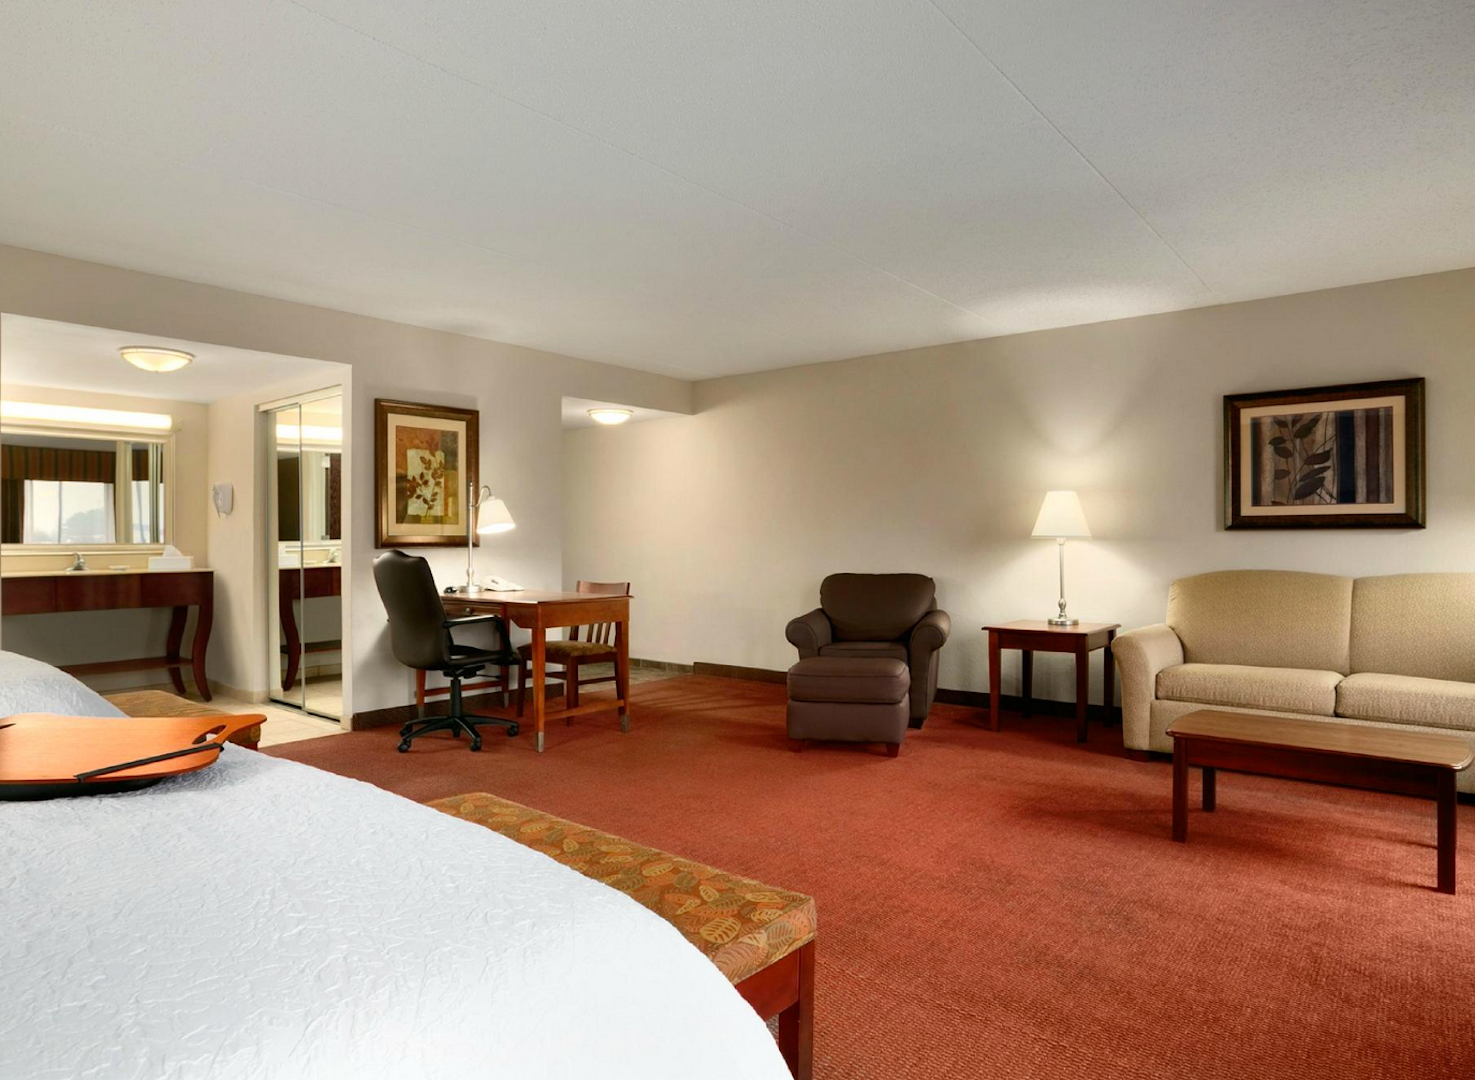 Suites are also available